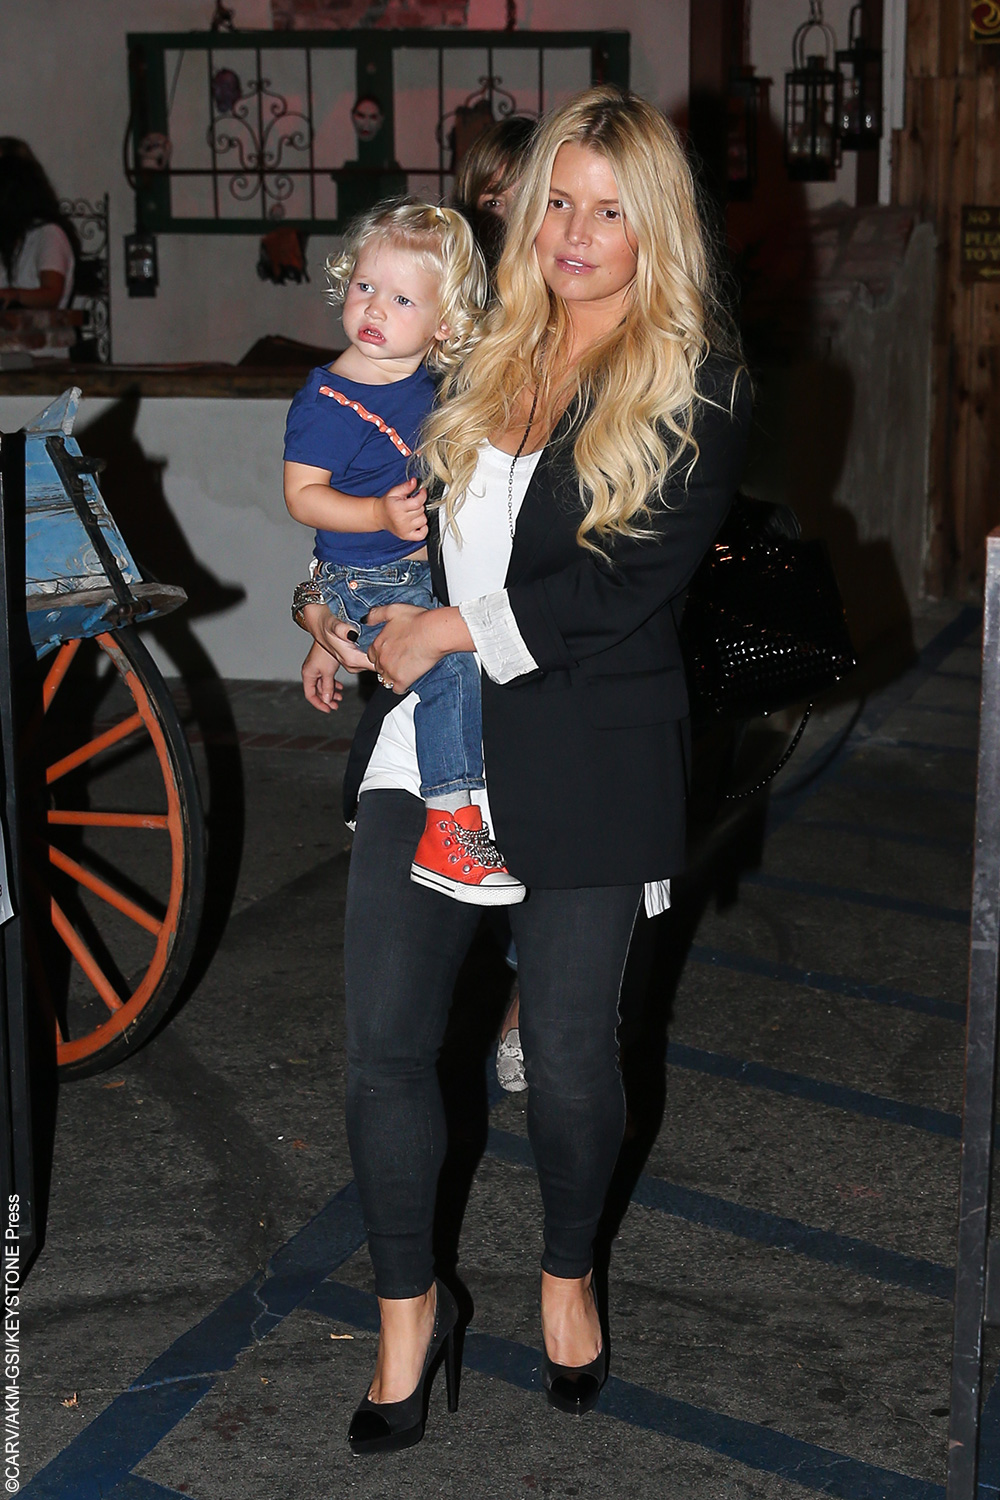 Maxwell Johnson, whose father is professional football player Eric Johnson, is identical to her mom Jessica Simpson. The cutie has her mother's golden locks and pout.